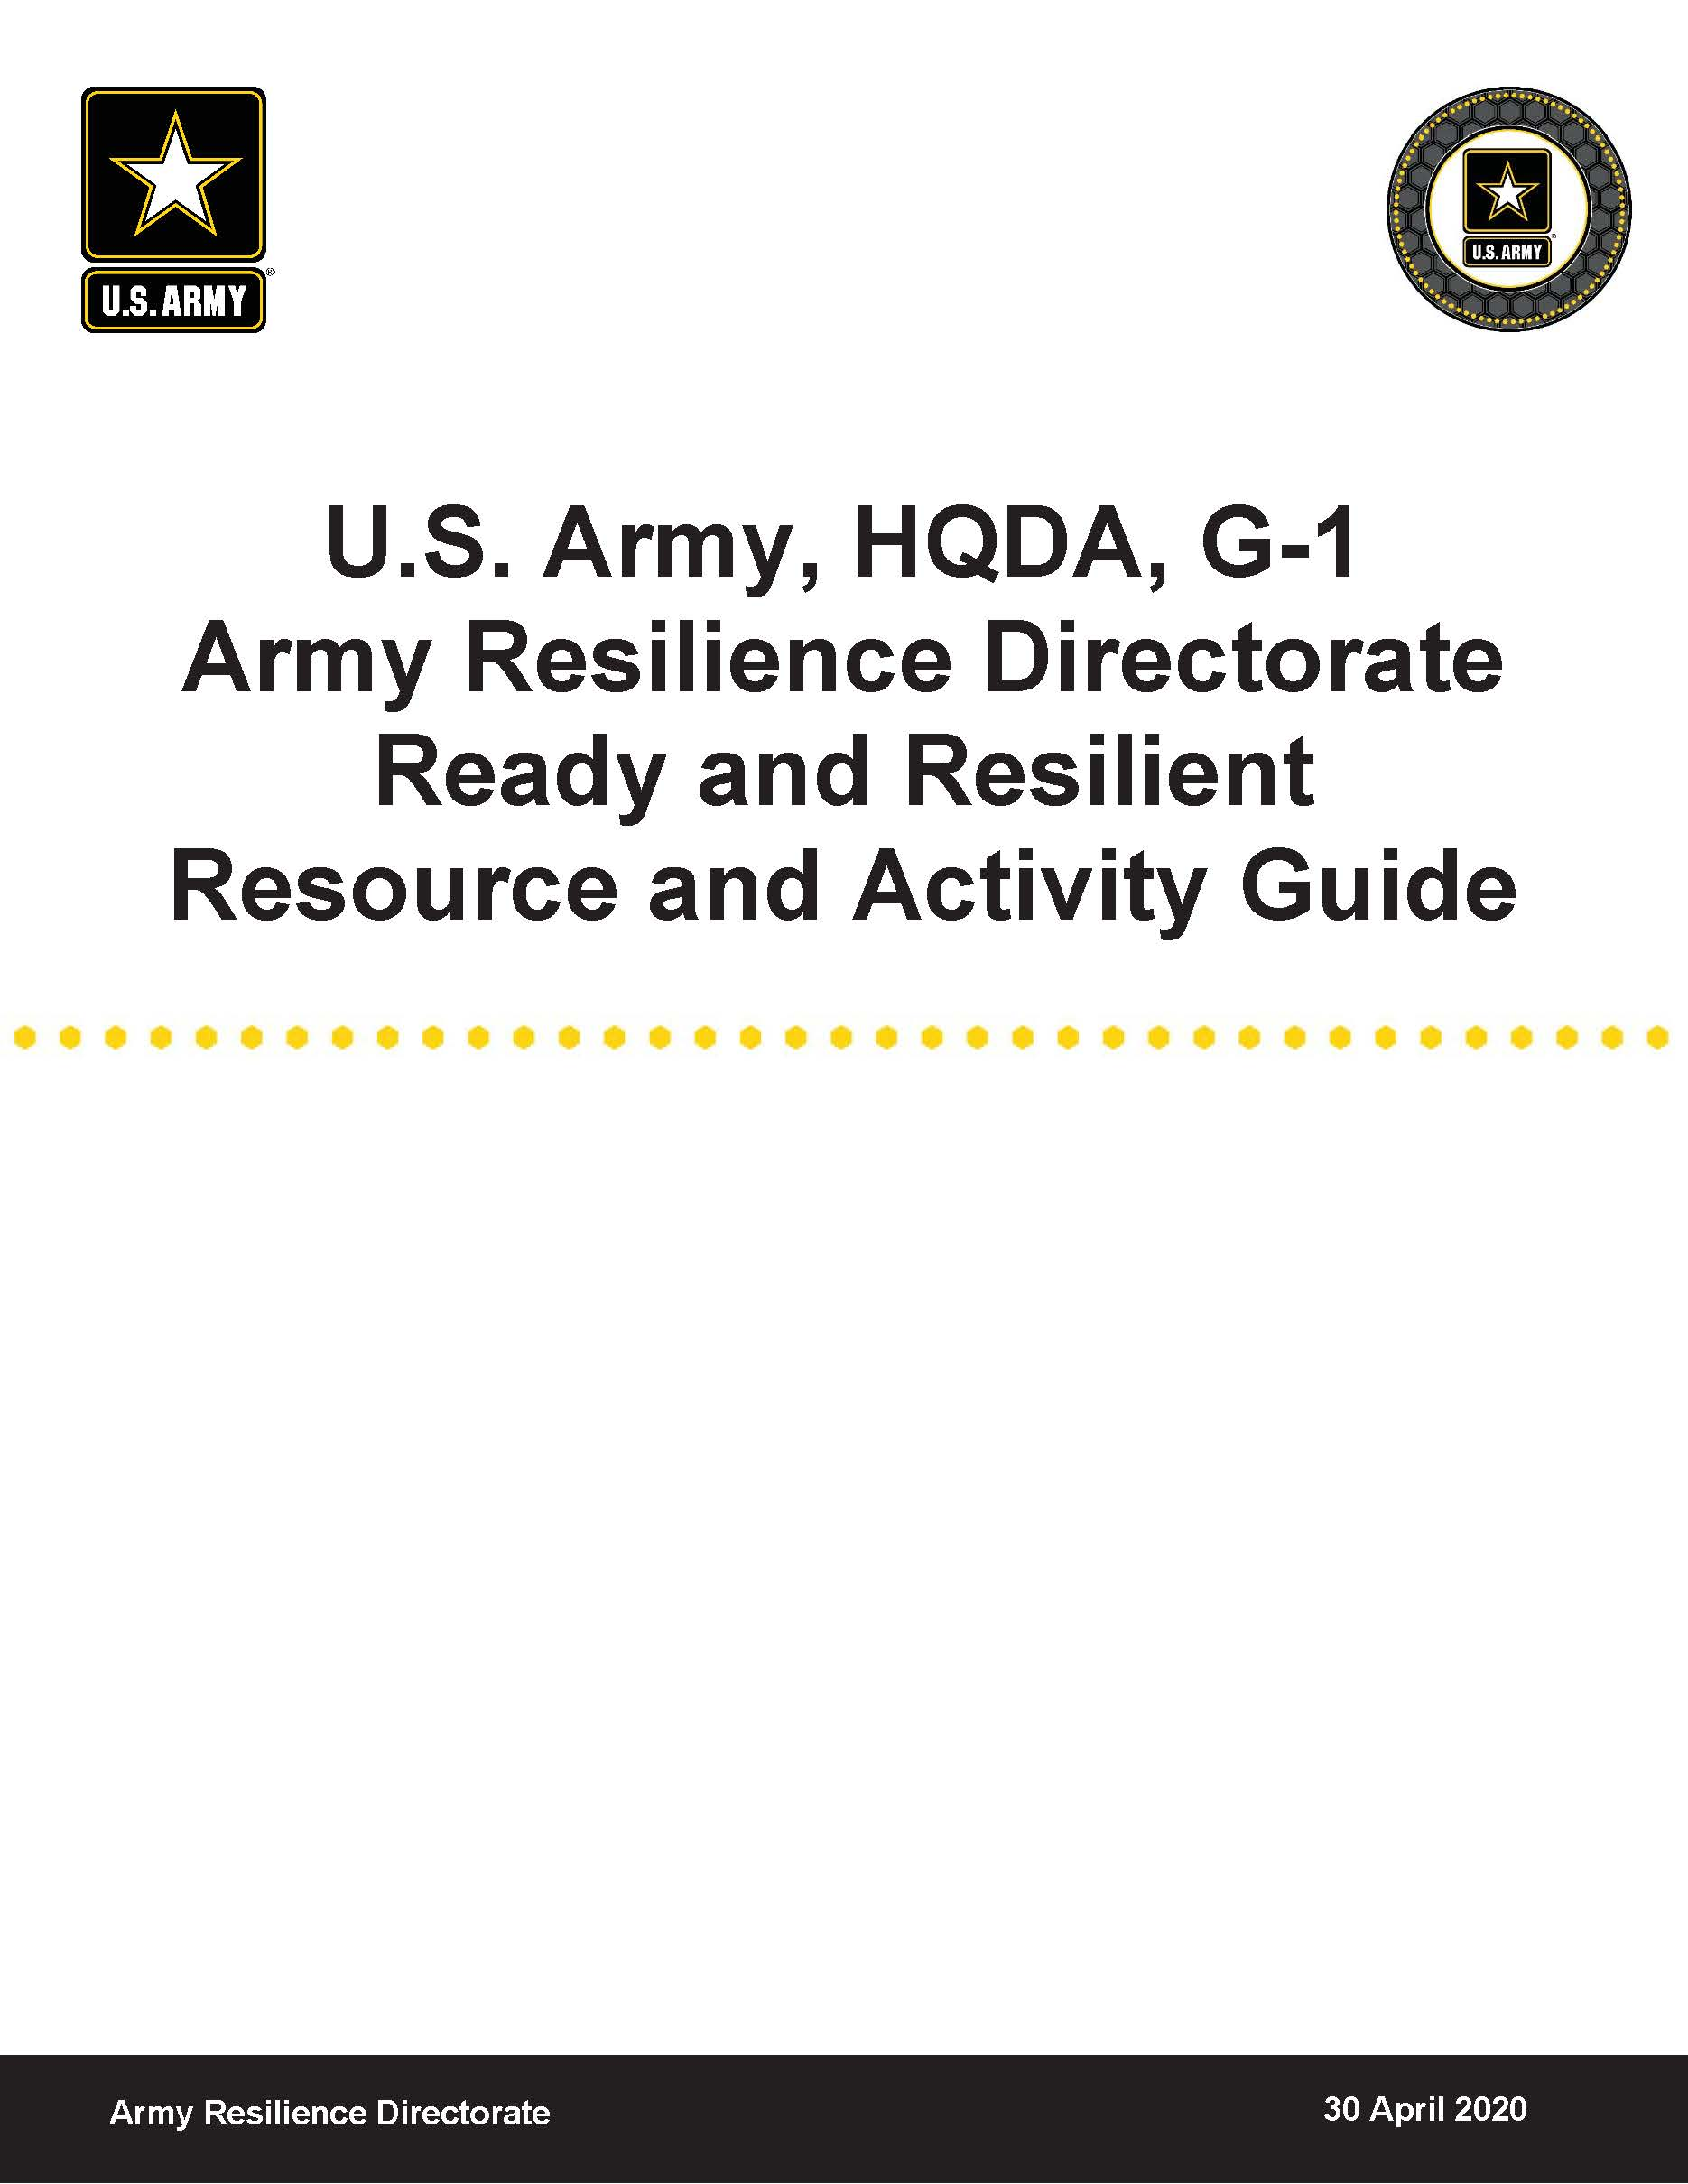 U.S. Army, HQDA, G-1 Army Resilience Directorate Ready and Resilient Resource and Activity Guide